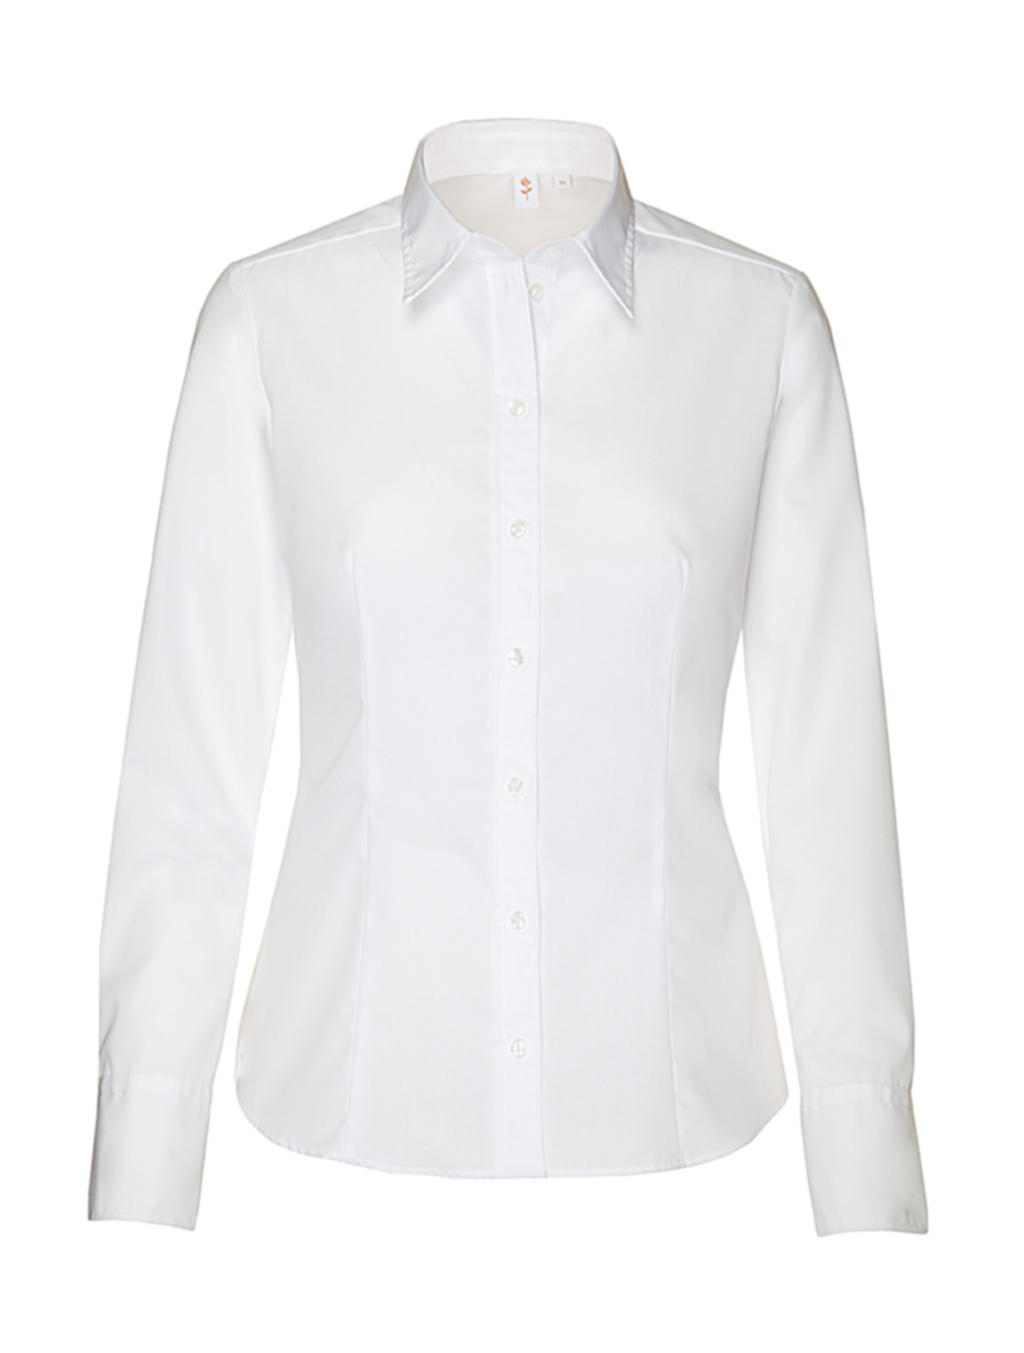 Seidensticker Ladies` Modern Fit Shirt LS